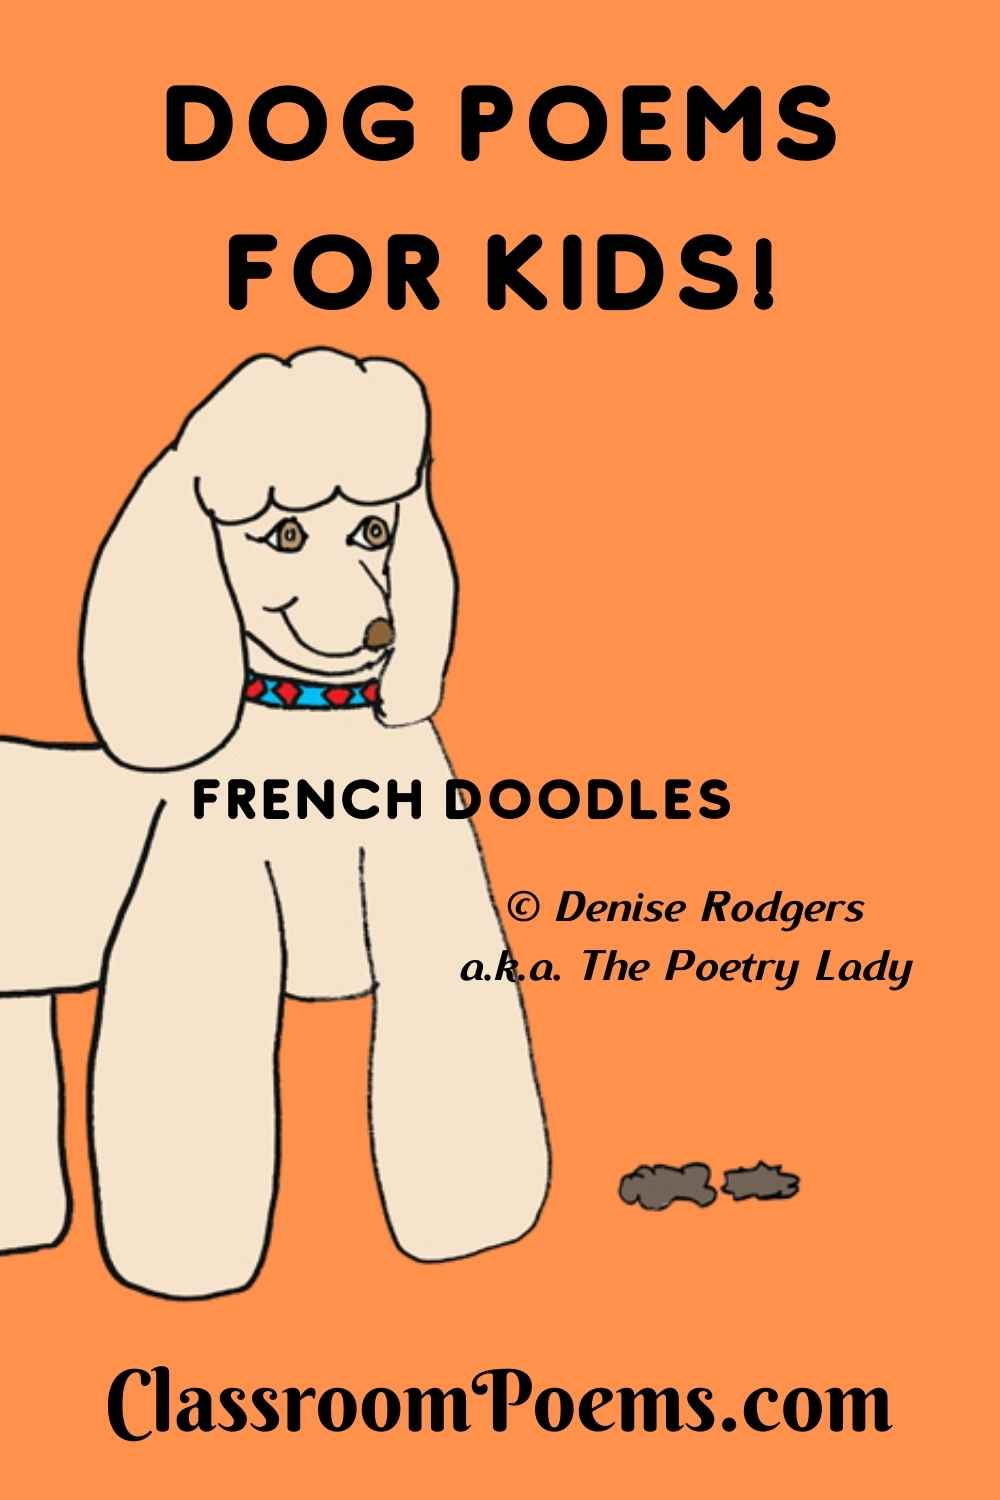 FRENCH DOODLES, a funny dog poem for kids by Poetry Lady Denise Rodgers on ClassroomPoems.com.